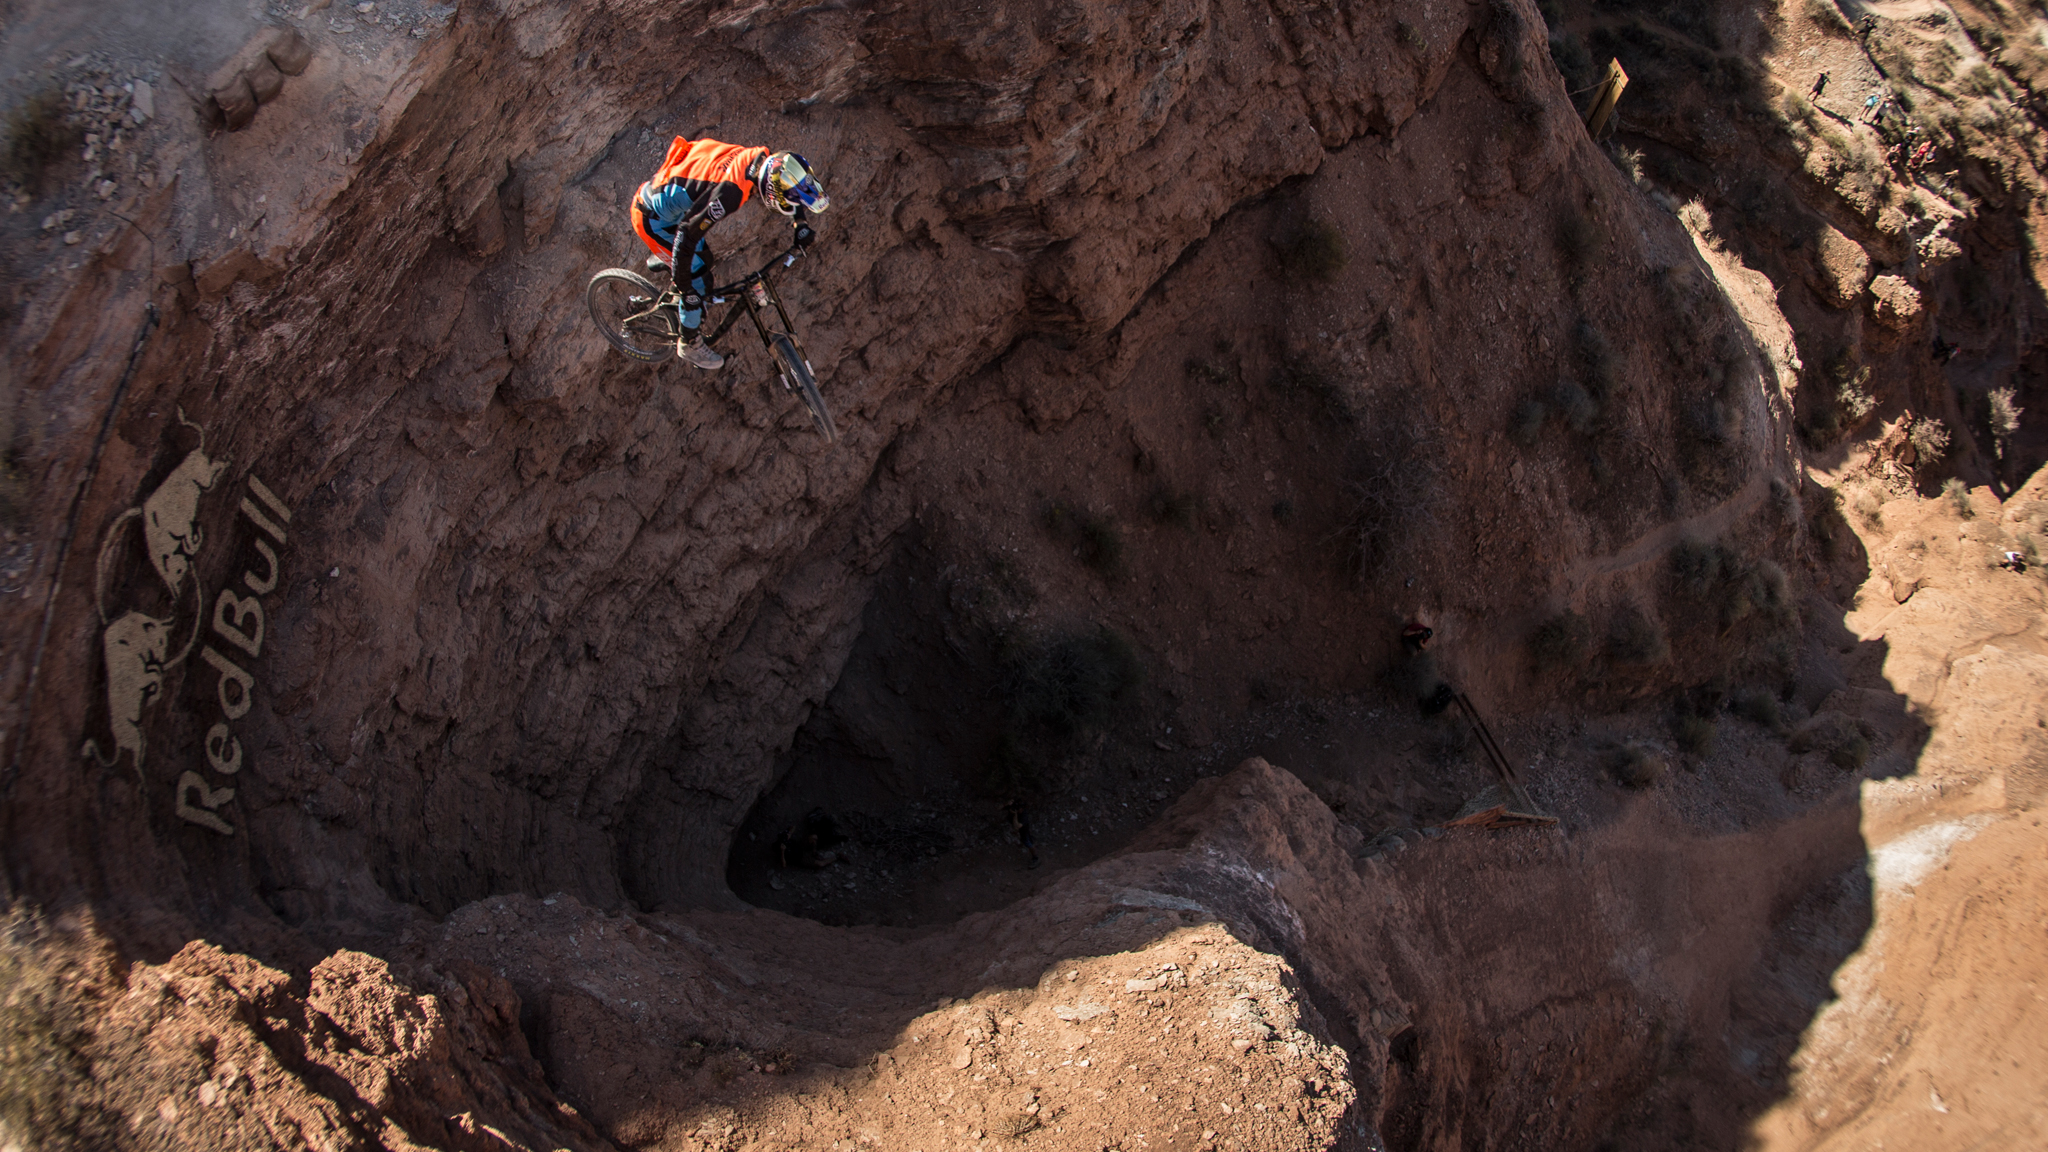 We've never had this big of a spotlight for our sport before, says Brandon Semenuk, the FMB World Tour 2012 champ.